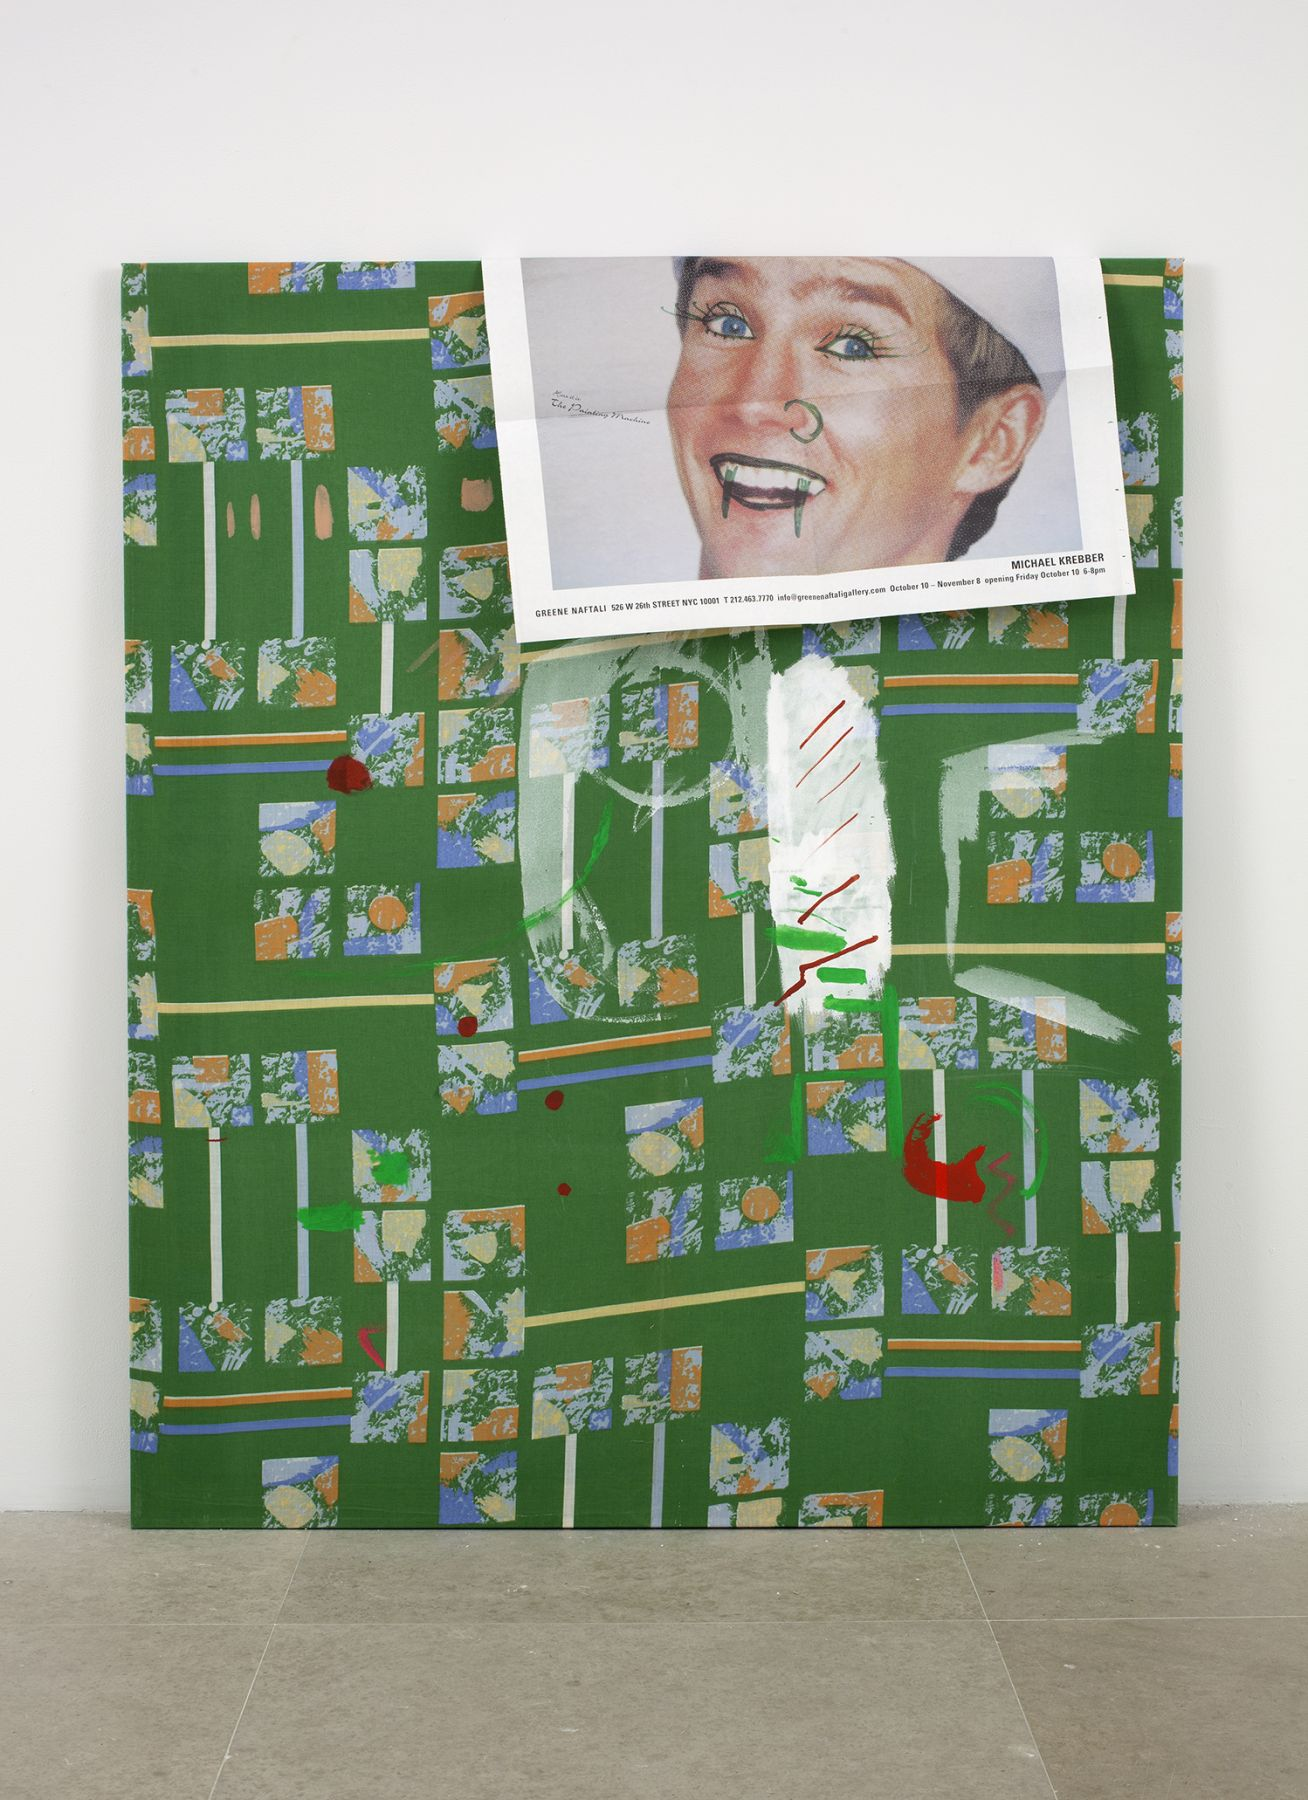 before you change your mind #2 (puberty gadget), 2003,  pencil, acrylic and paper on fabric,  48 x 40 inches